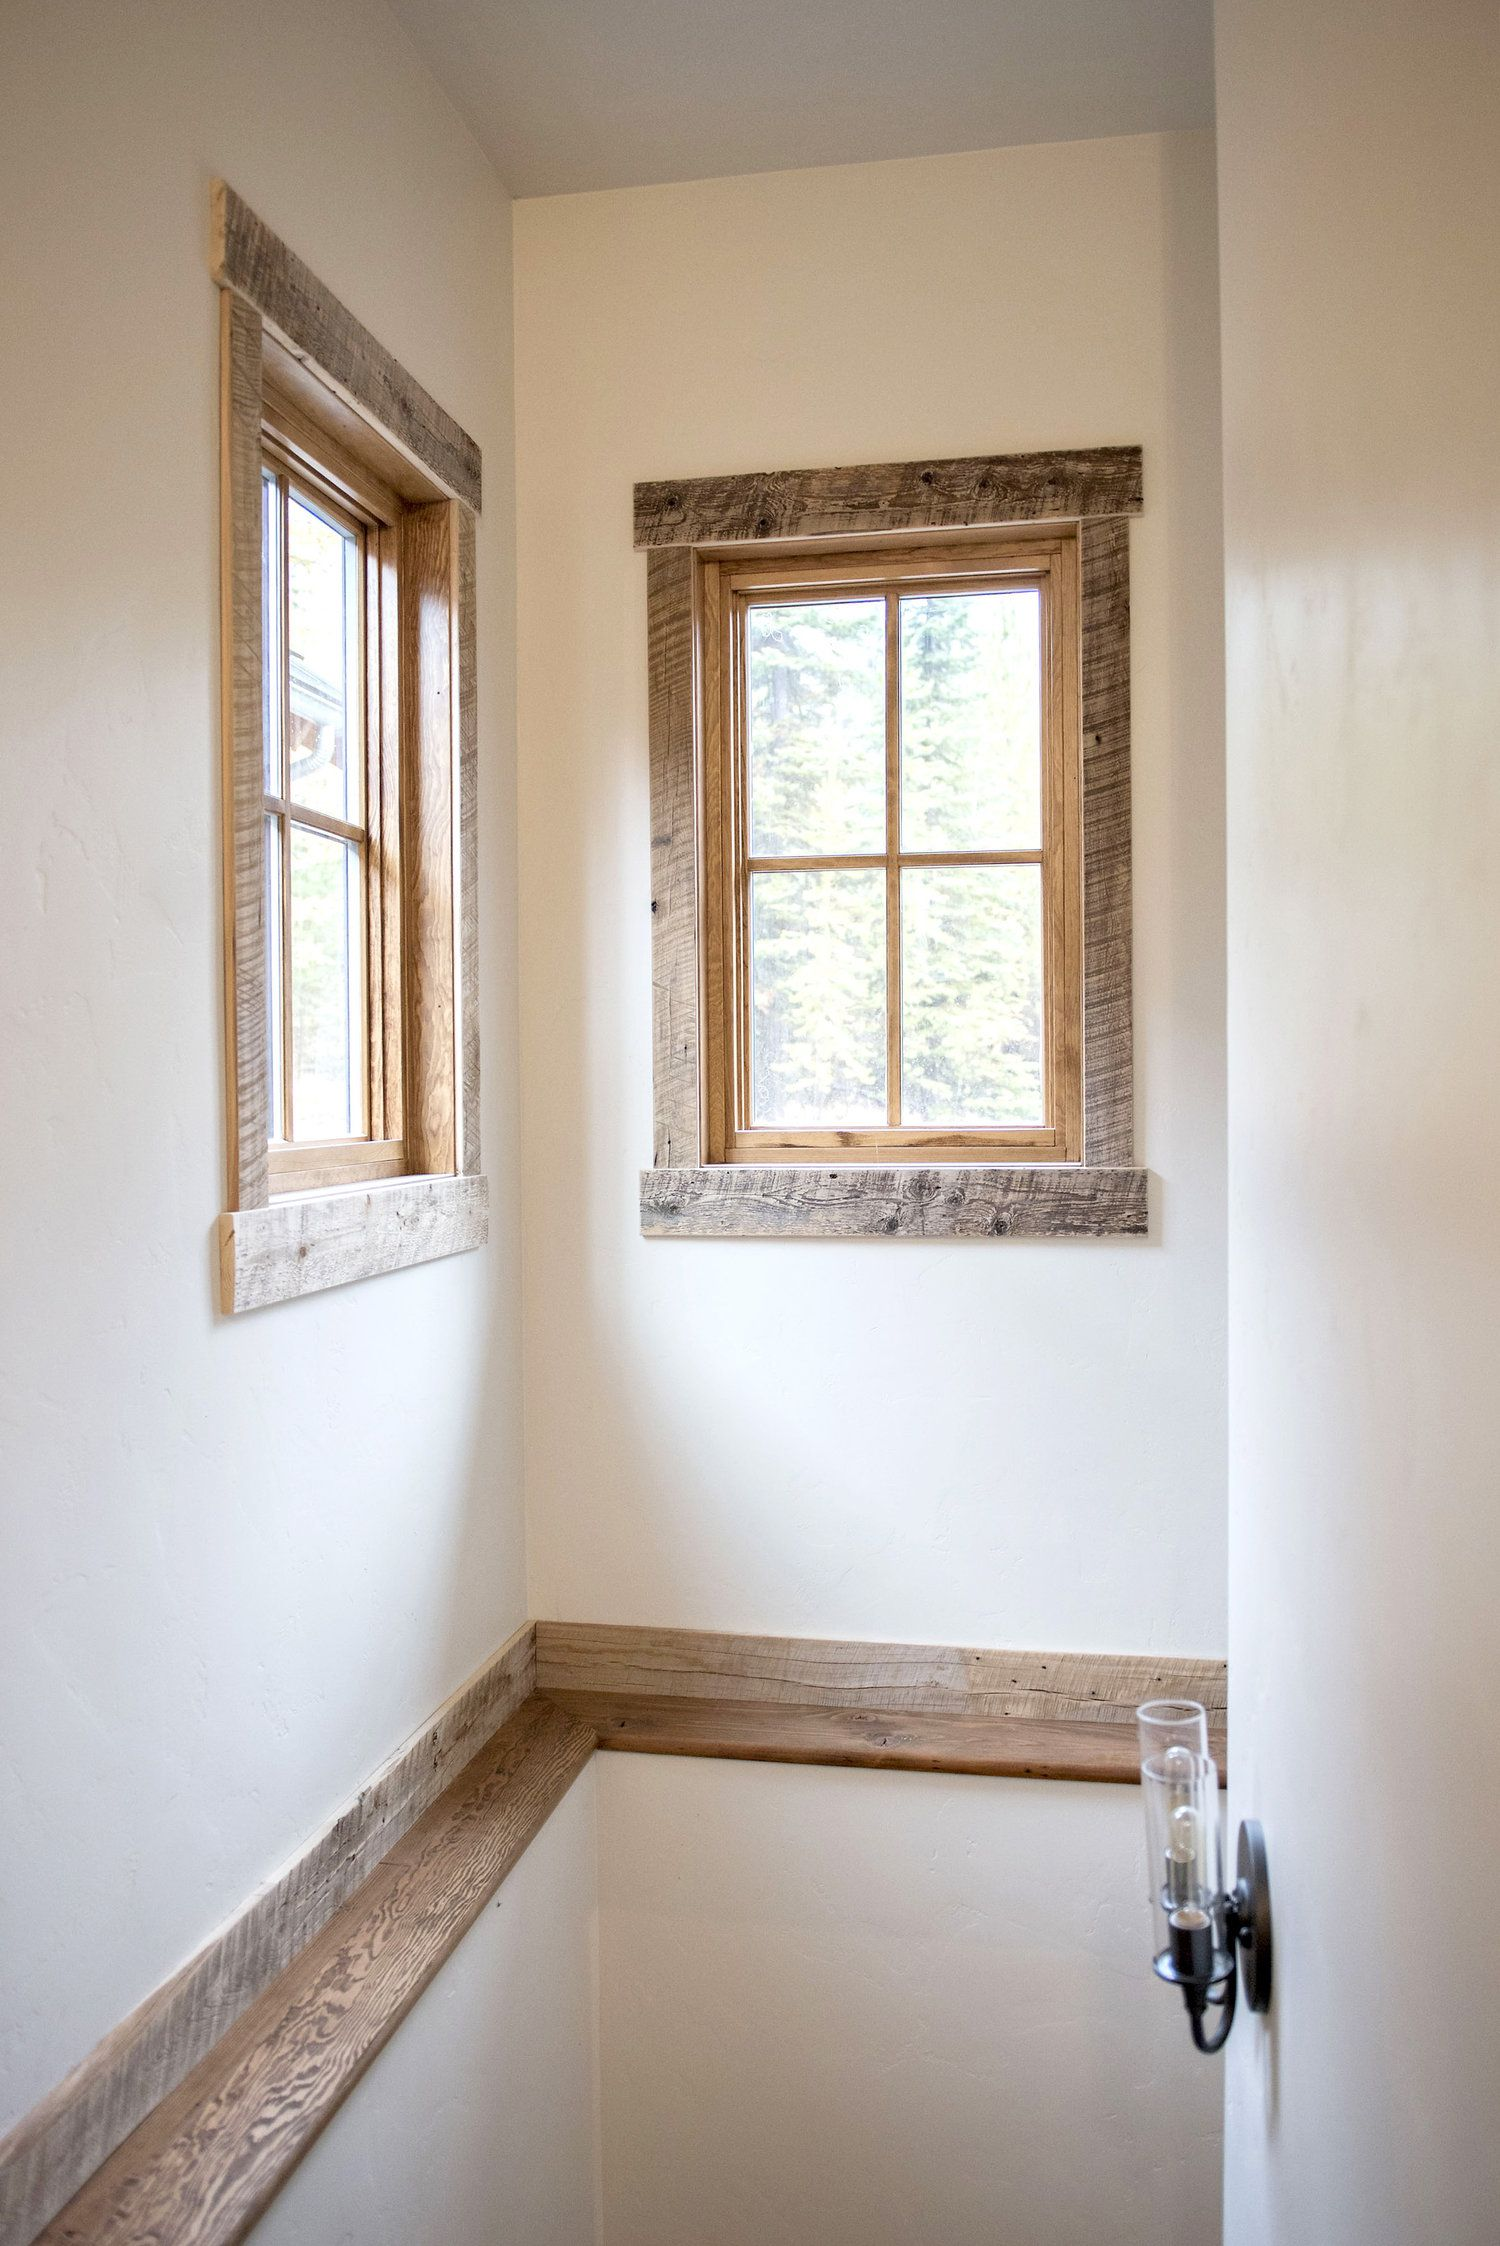 Adding reclaimed trim to interior doors & windows is a